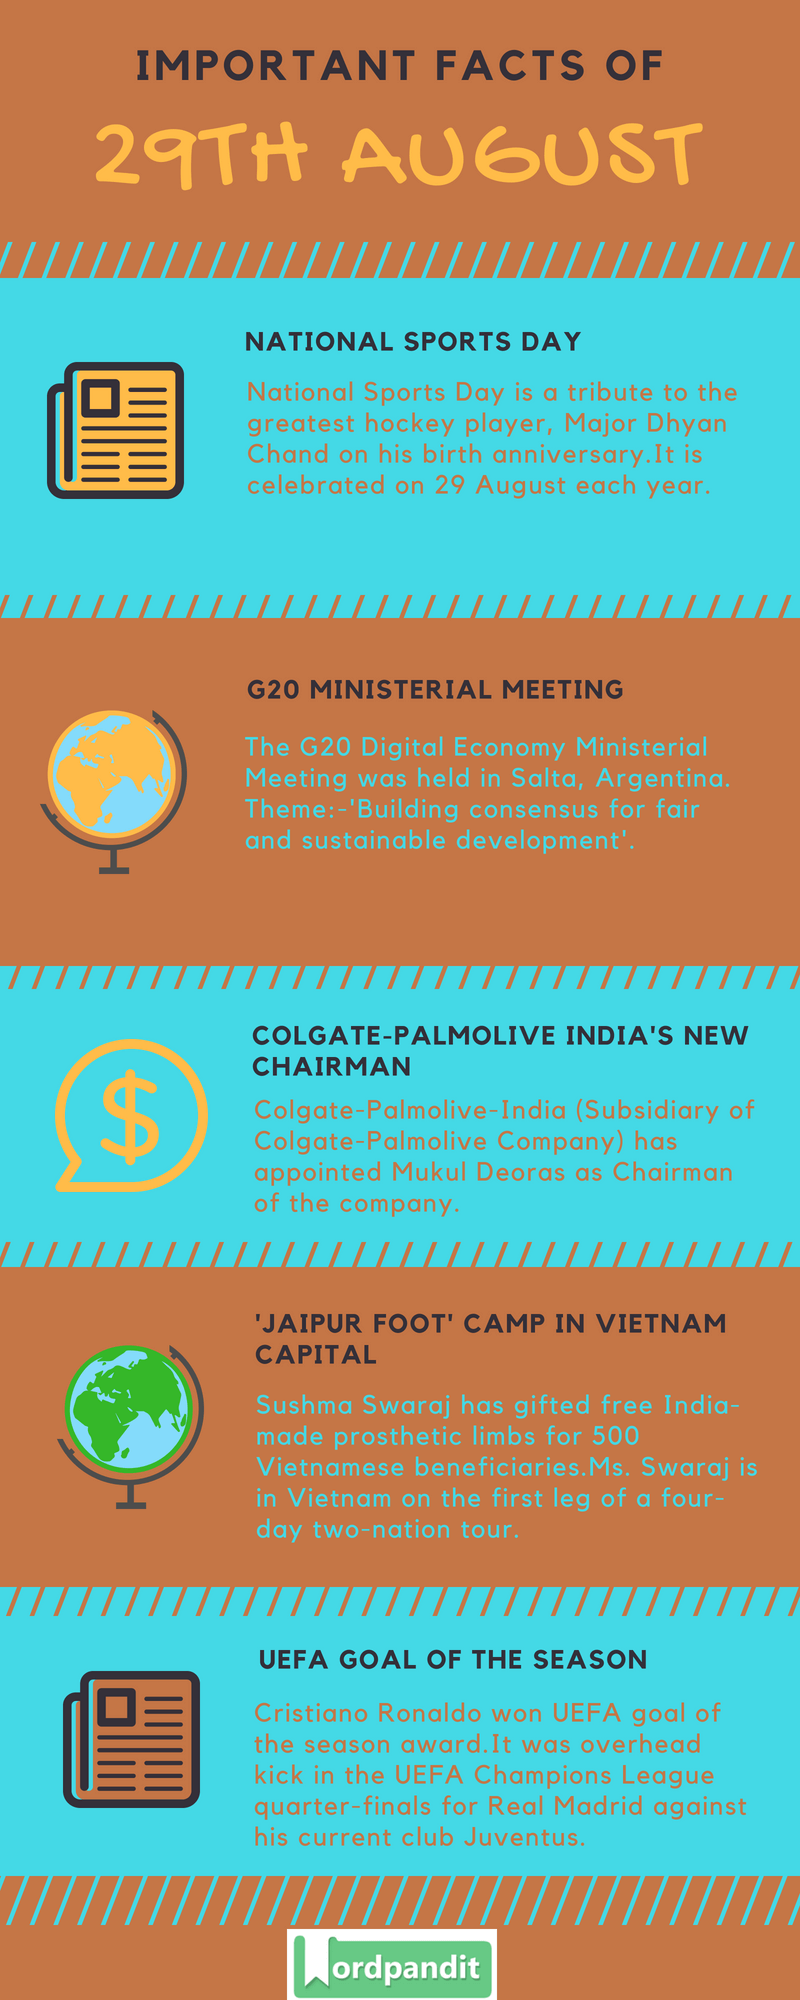 Daily Current Affairs 29 August 2018 Current Affairs Quiz August 29 2018 Current Affairs Infographic